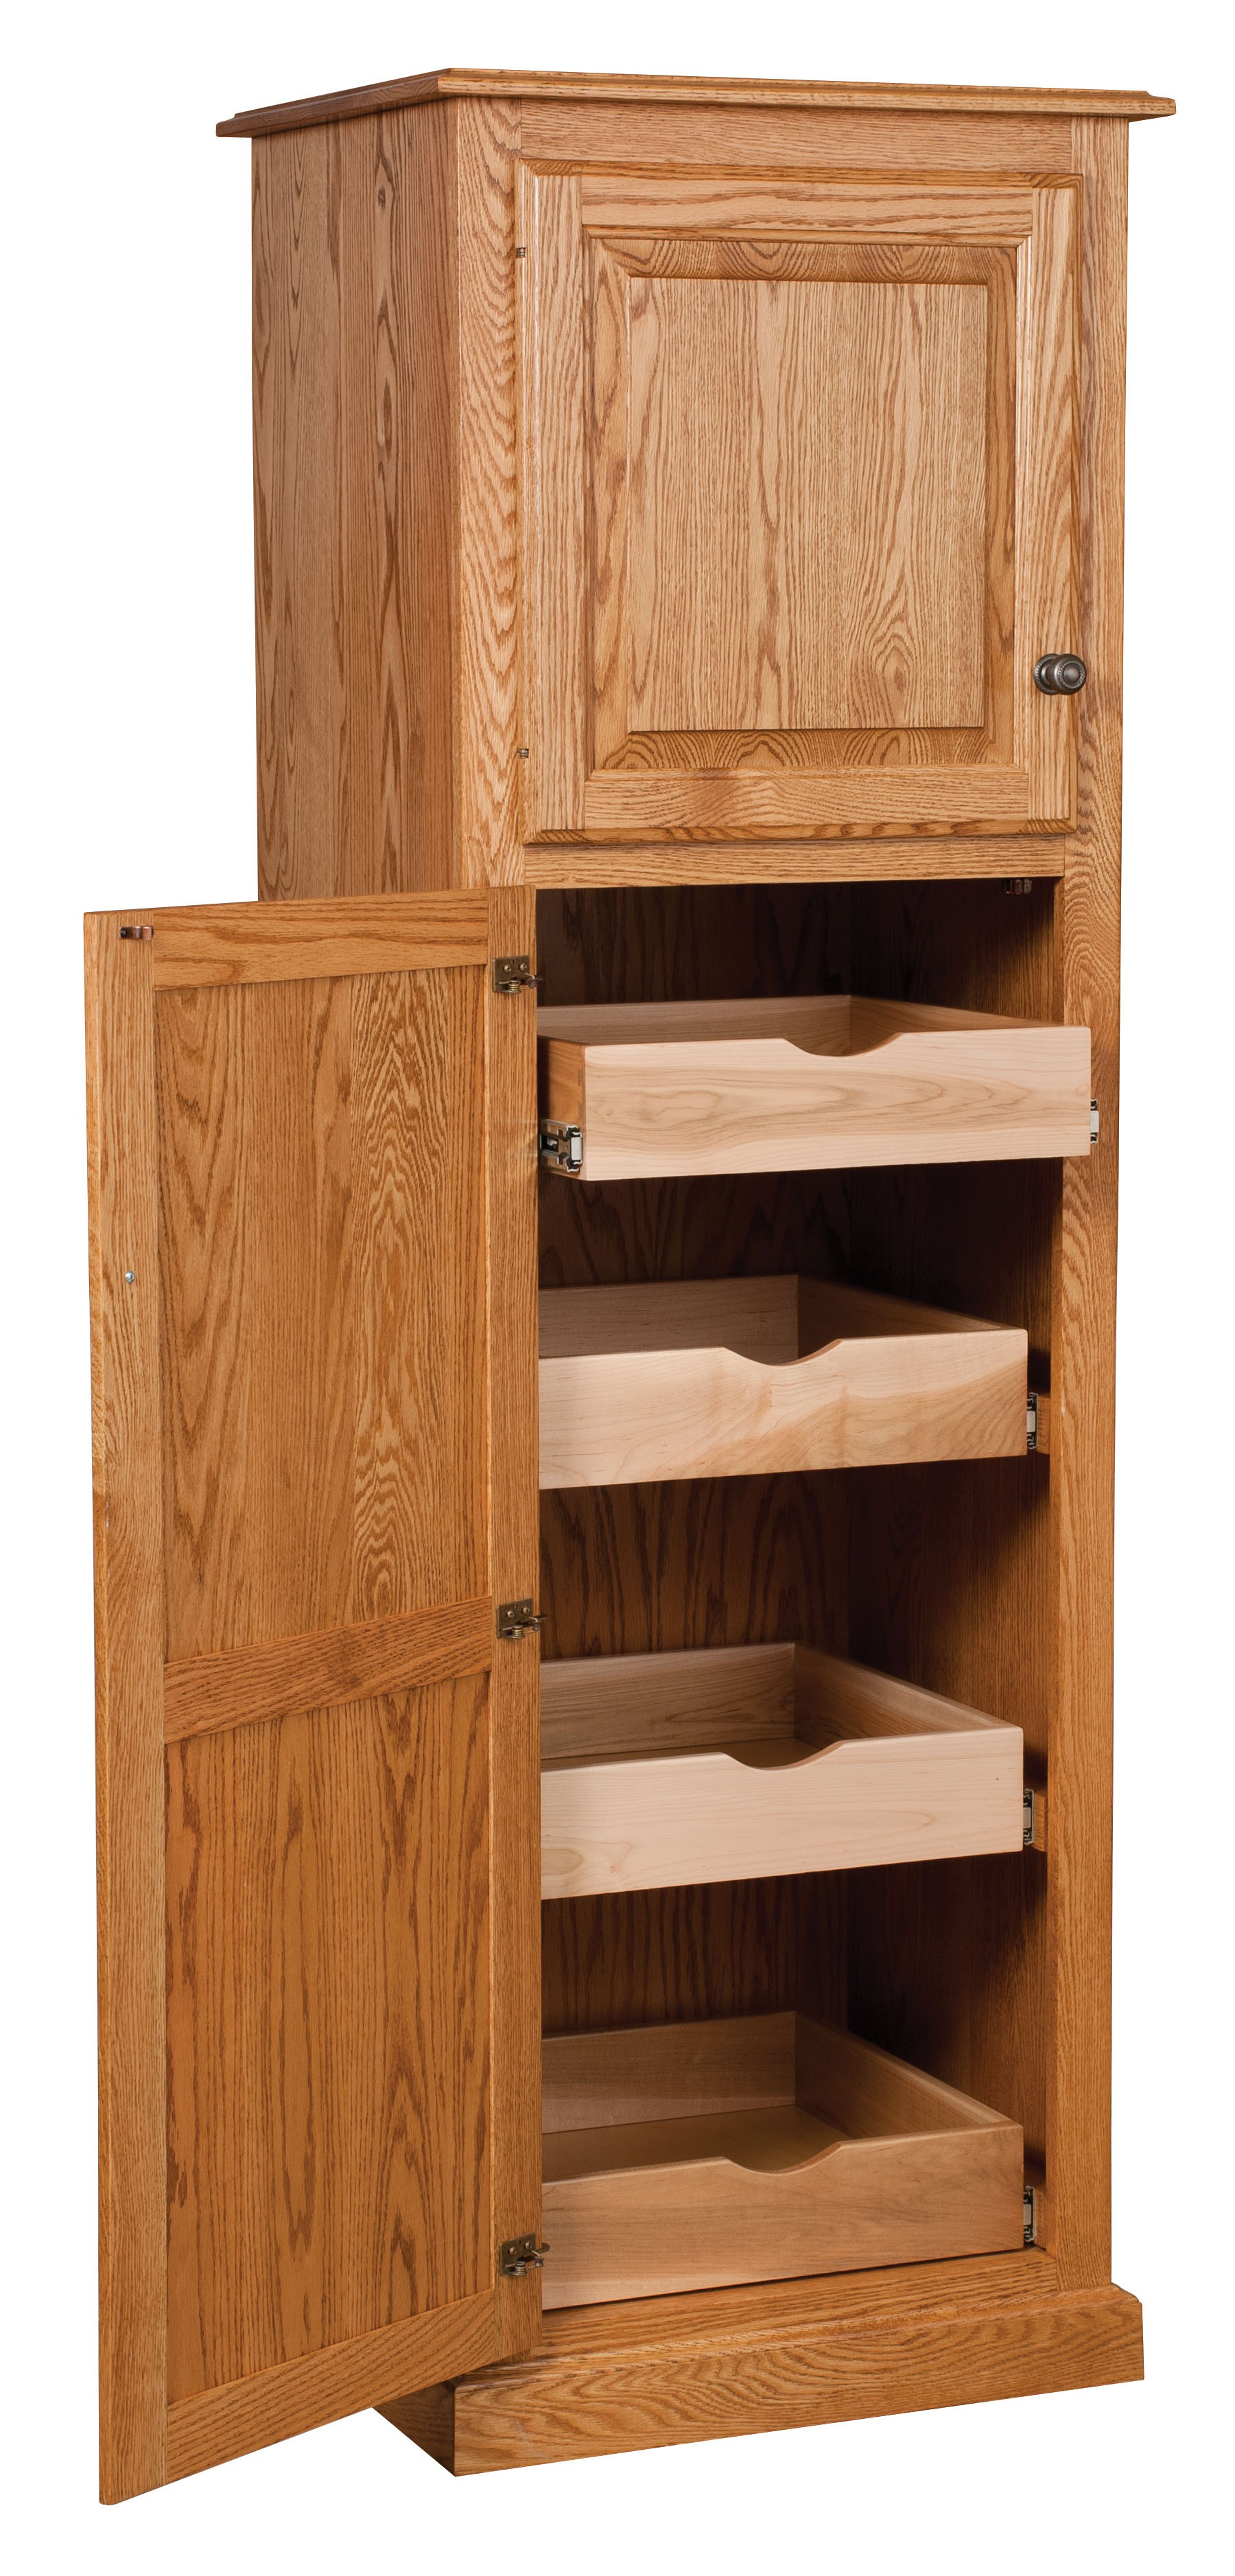 Kitchen Cabinets Amish Country Traditional Kitchen Pantry Storage